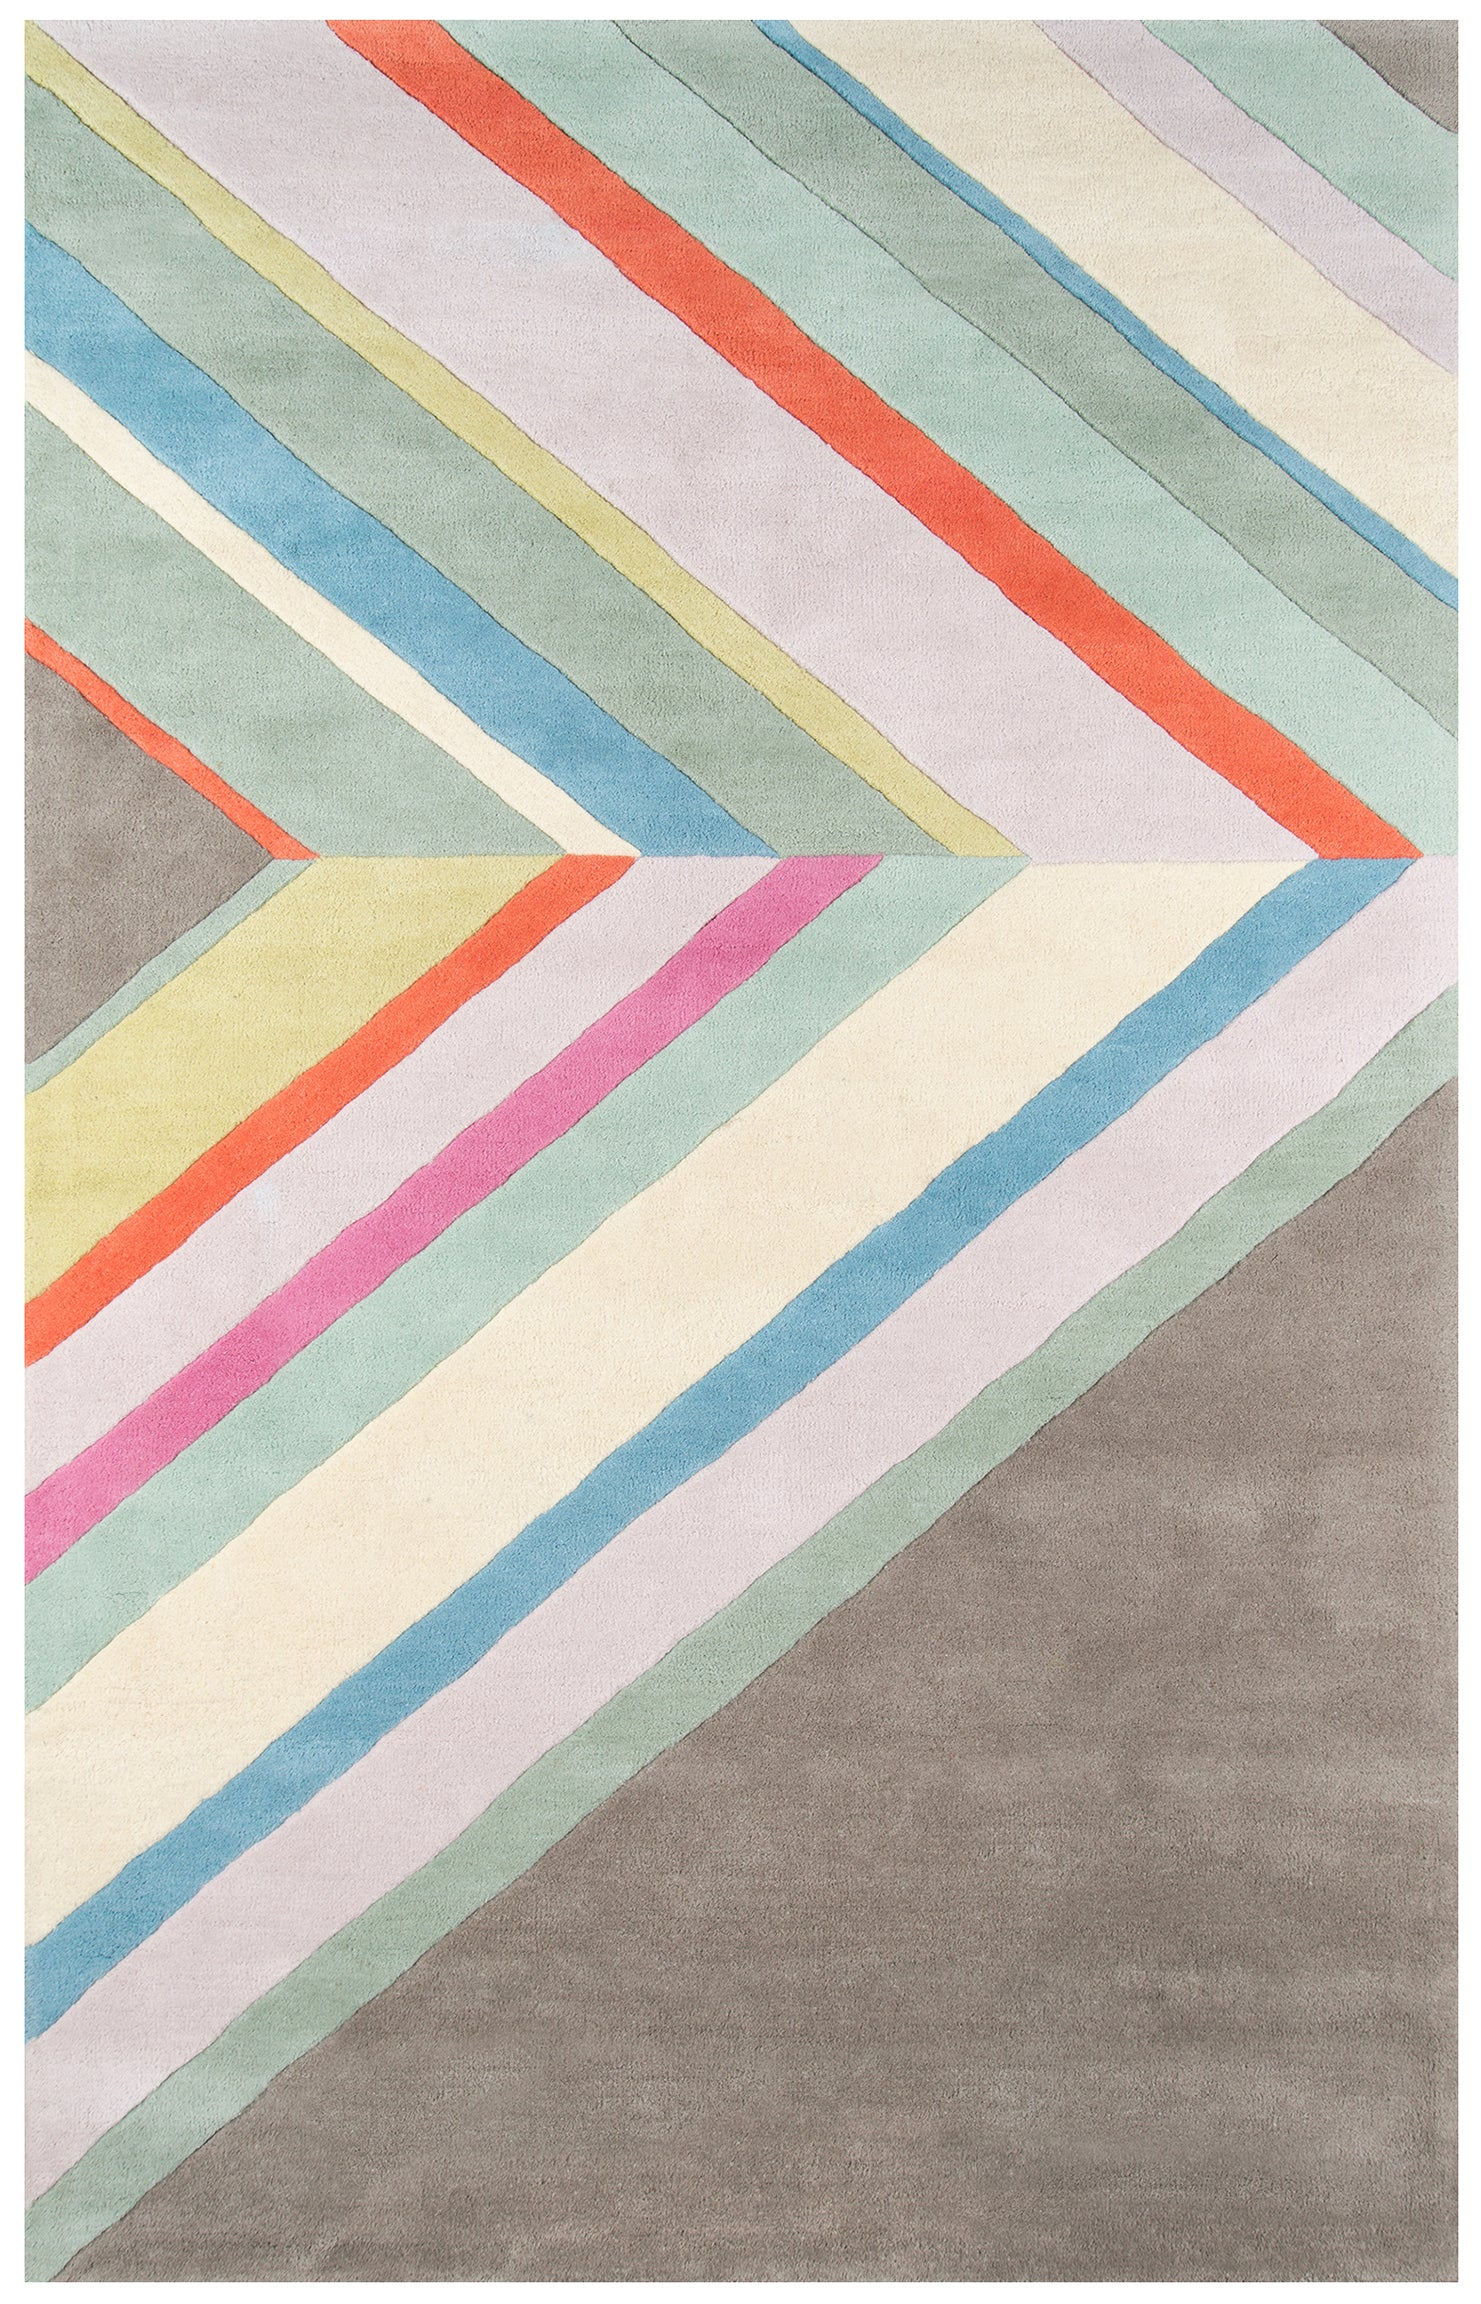 80s Ultralight Style Pink Orange Gray Rug - Novogratz - Del Mar